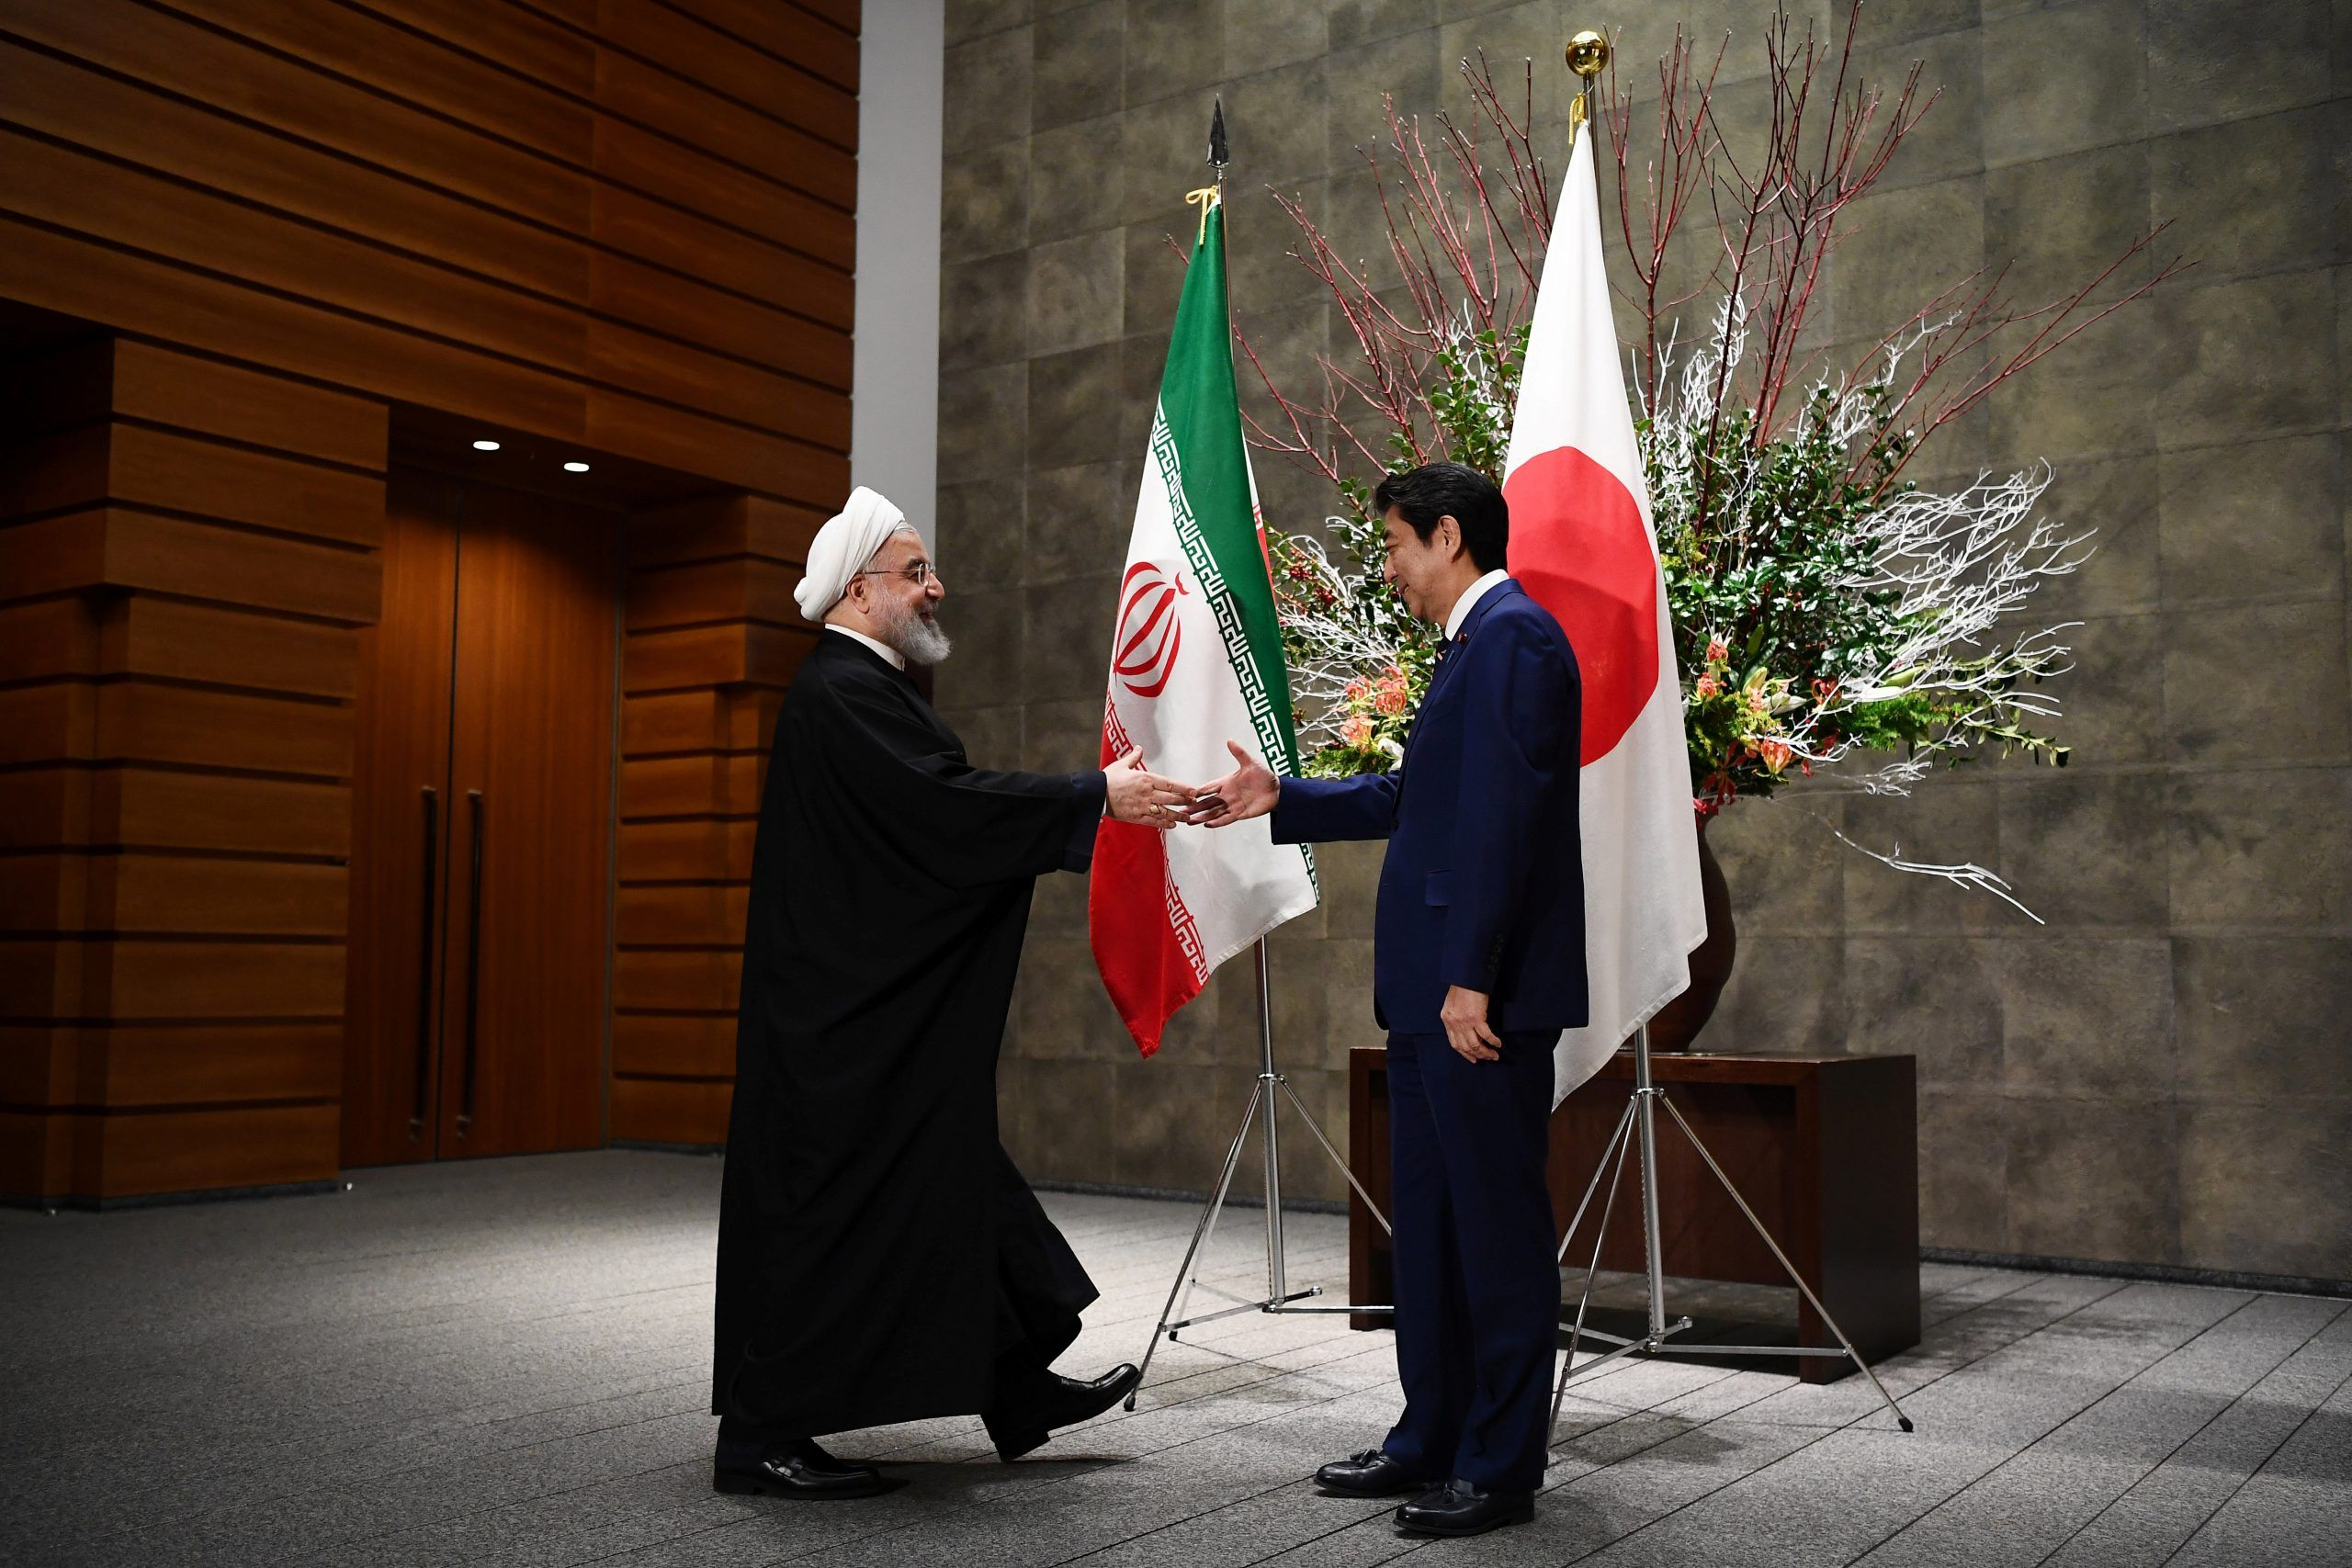 2019-12-20T105759Z_1076992389_RC2YYD9MO8GG_RTRMADP_3_JAPAN-IRAN-scaled